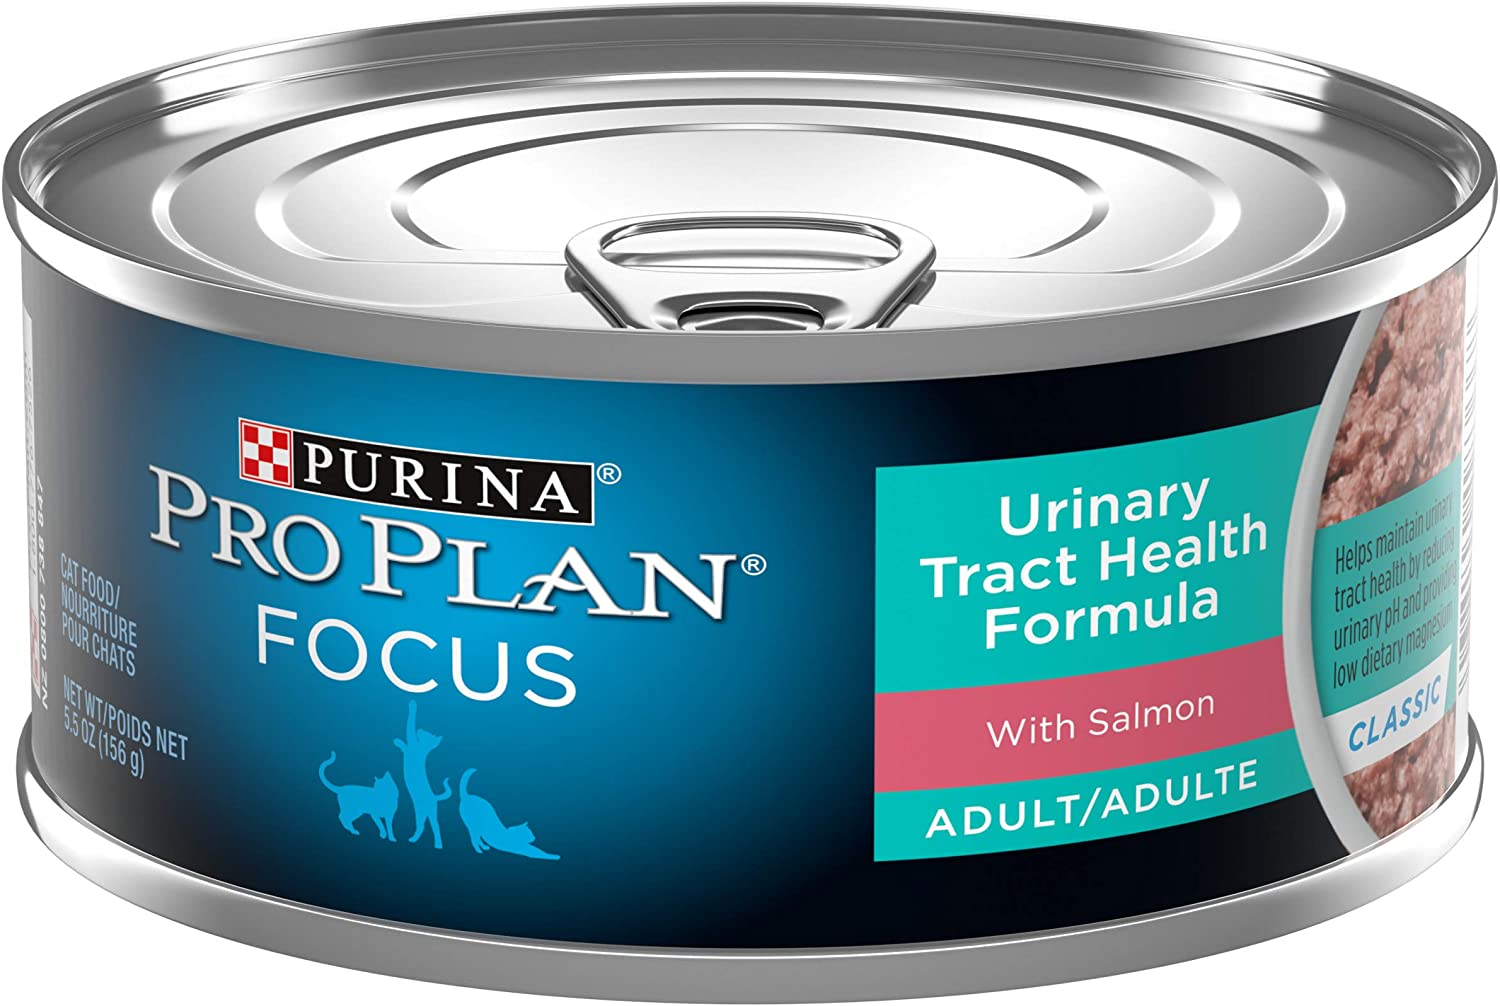 Purina Pro Plan Focus Adult Urinary Tract Health Formula with Salmon Wet Cat Food - (24) 5.5 oz. Cans